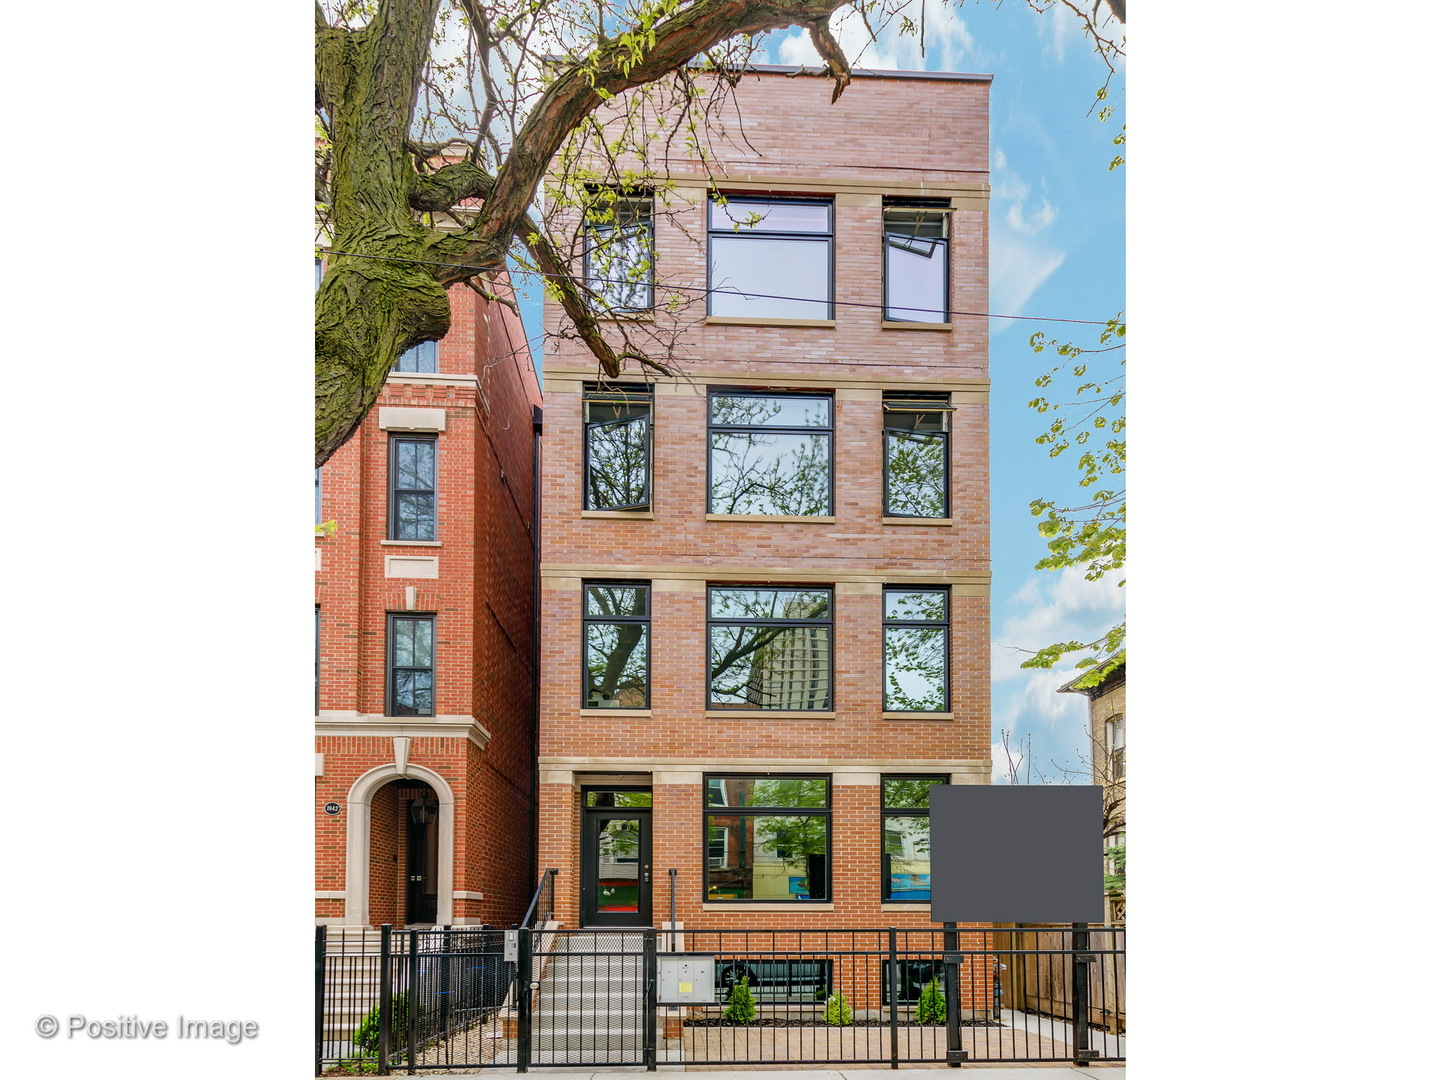 2016 Webster Avenue, Chicago, Illinois 60614, 4 Bedrooms Bedrooms, ,3 BathroomsBathrooms,Attached Single,For Sale,Webster,10814673